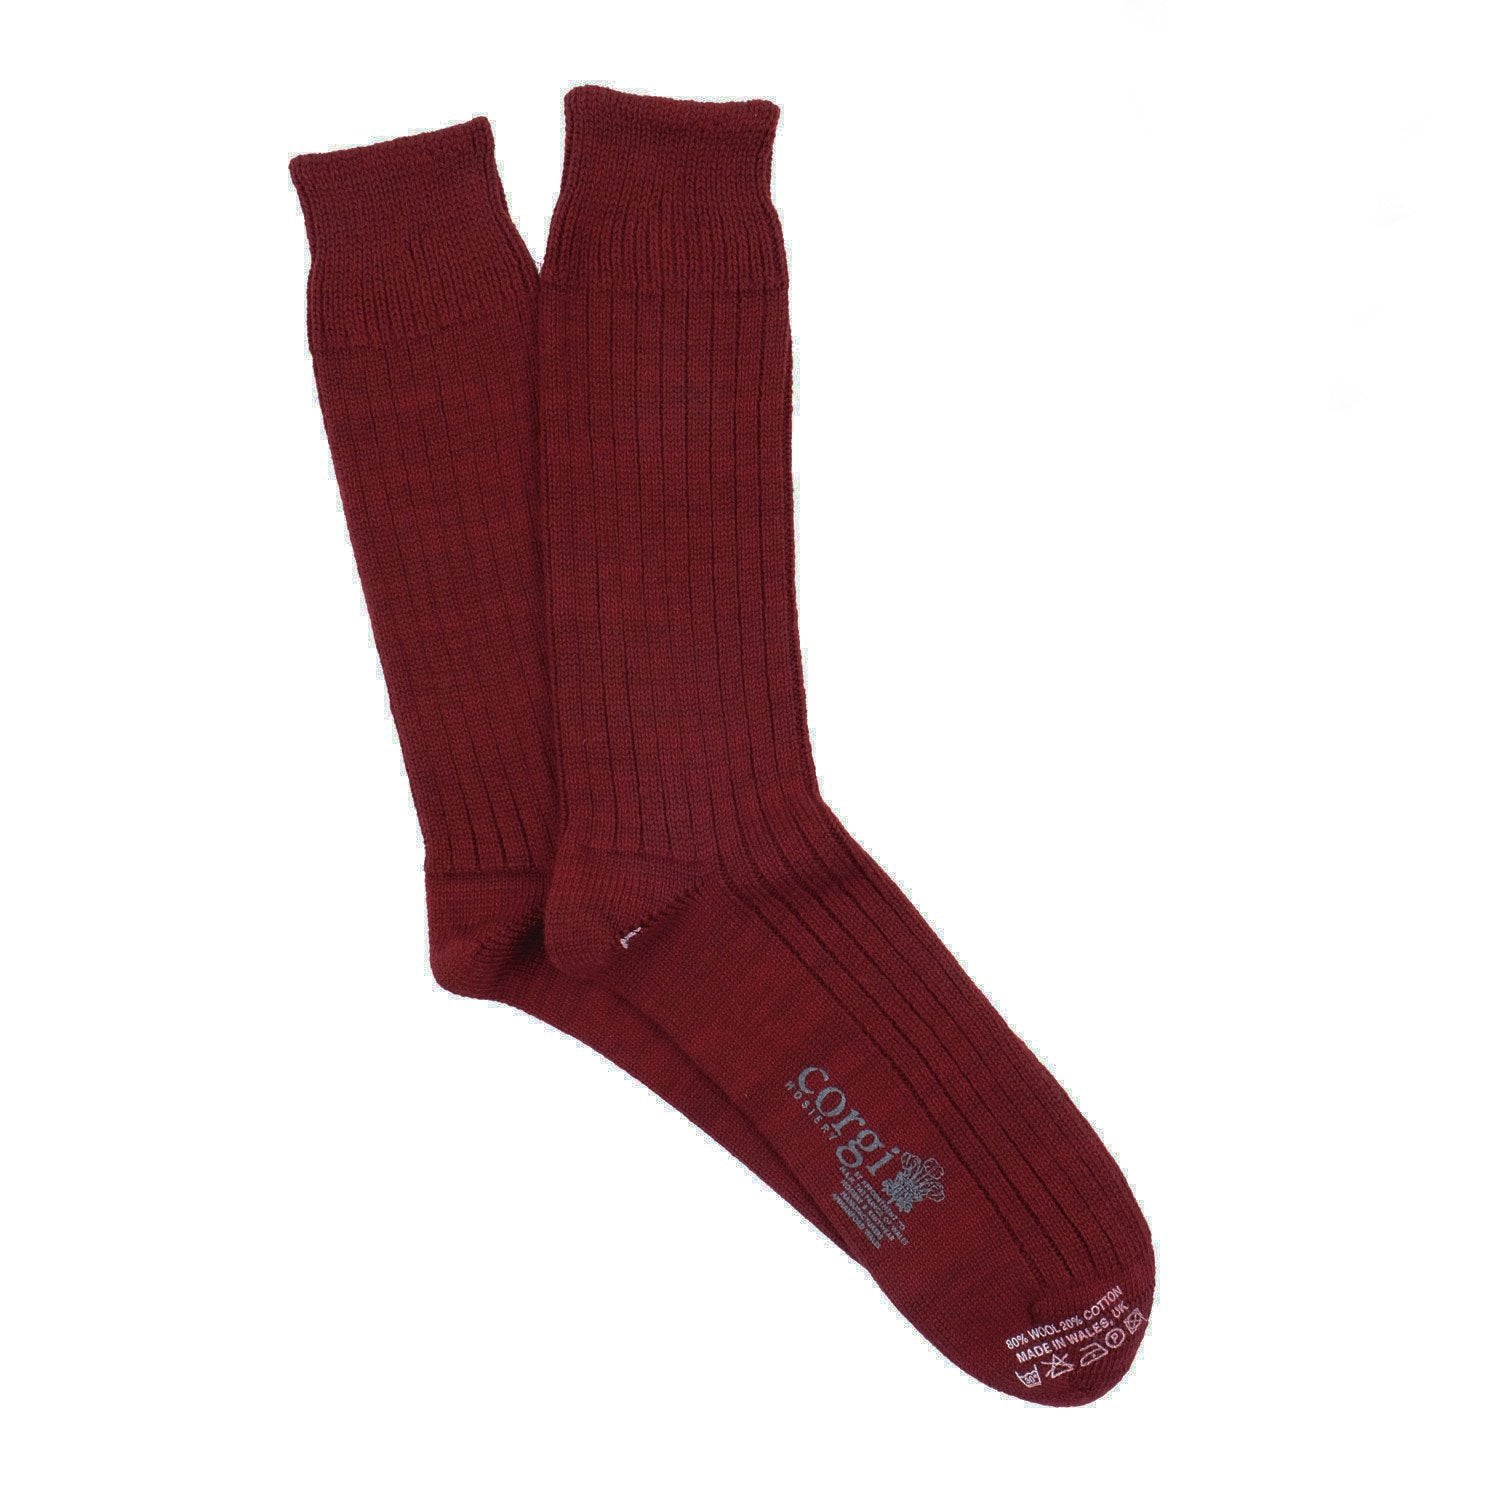 Corgi Men's Rib Wool & Cotton Socks